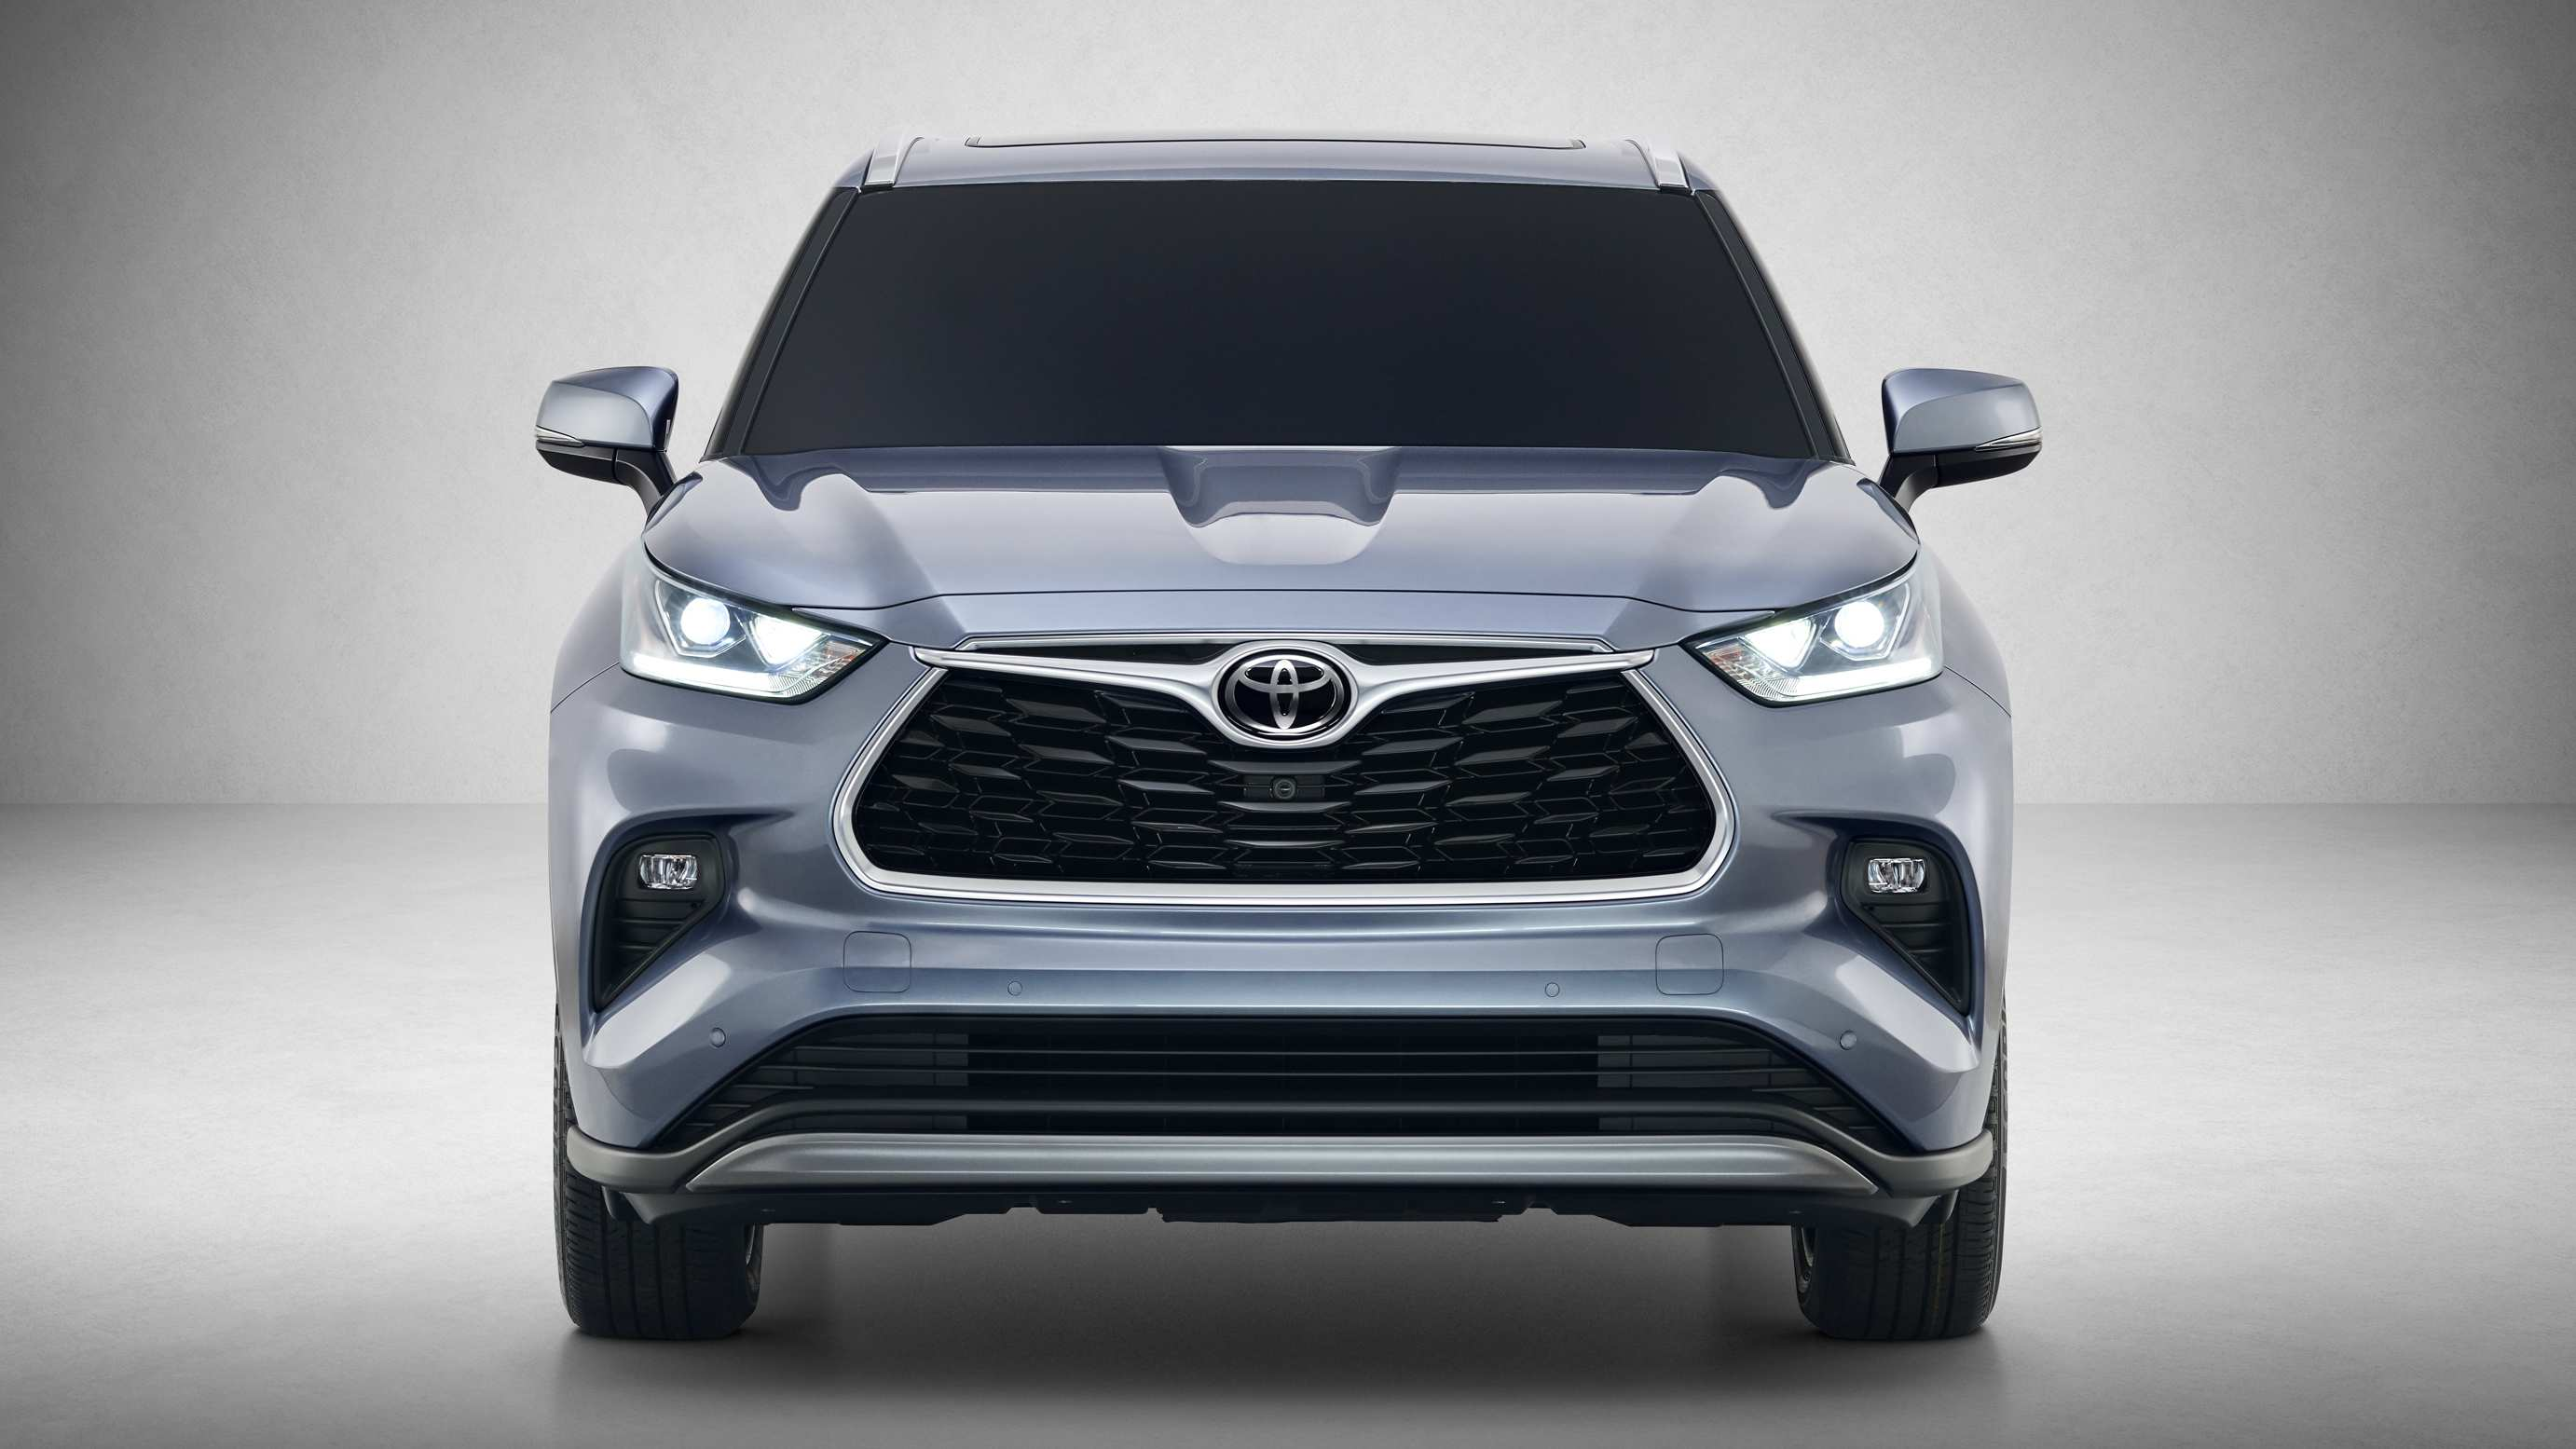 48 Great Toyota Kluger 2020 Australia Release Date Exterior for Toyota Kluger 2020 Australia Release Date